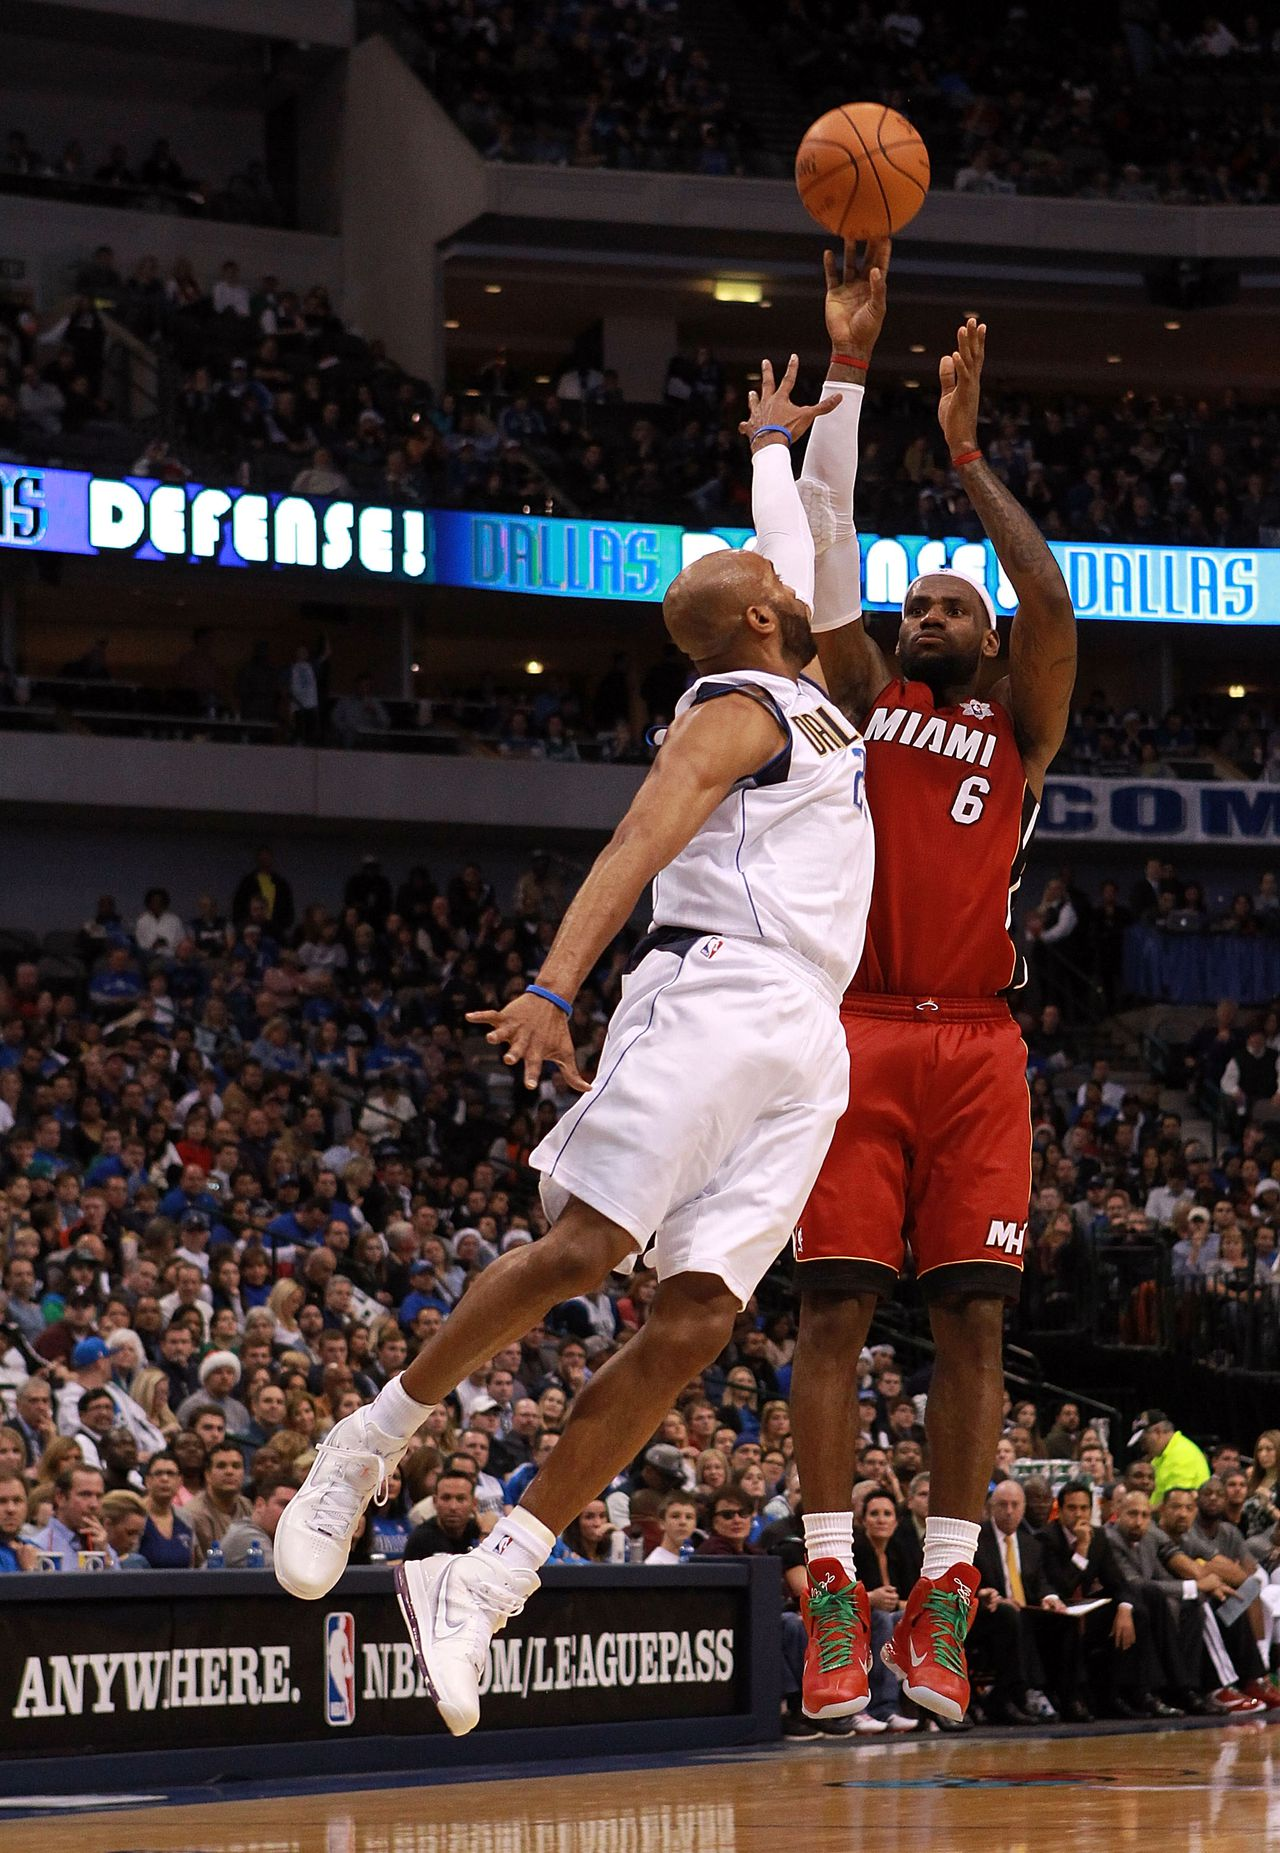 DALLAS, TX - DECEMBER 25: LeBron James #6 of the Miami Heat takes a shot against Vince Carter #25 of the Dallas Mavericks during the NBA season opening game at American Airlines Center on December 25, 2011 in Dallas, Texas. NOTE TO USER: User expressly acknowledges and agrees that, by downloading and/or using this Photograph, user is consenting to the terms and conditions of the Getty Images License Agreement. Ronald Martinez/Getty Images/AFP == FOR NEWSPAPERS, INTERNET, TELCOS & TELEVISION USE ONLY ==